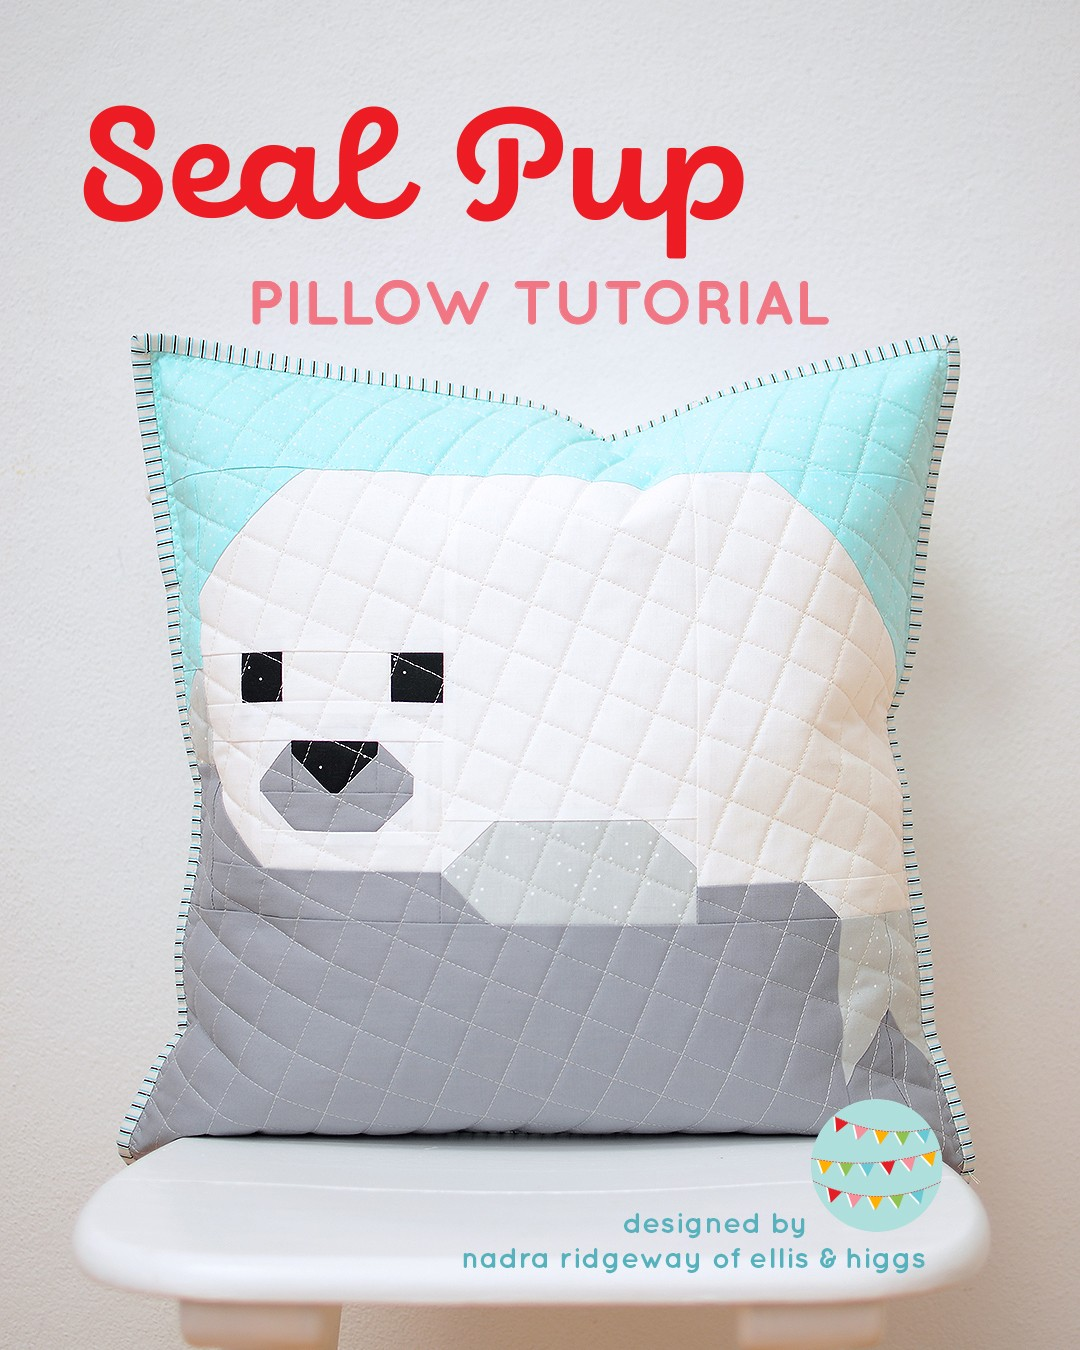 Quilted pillow with a seal pup design